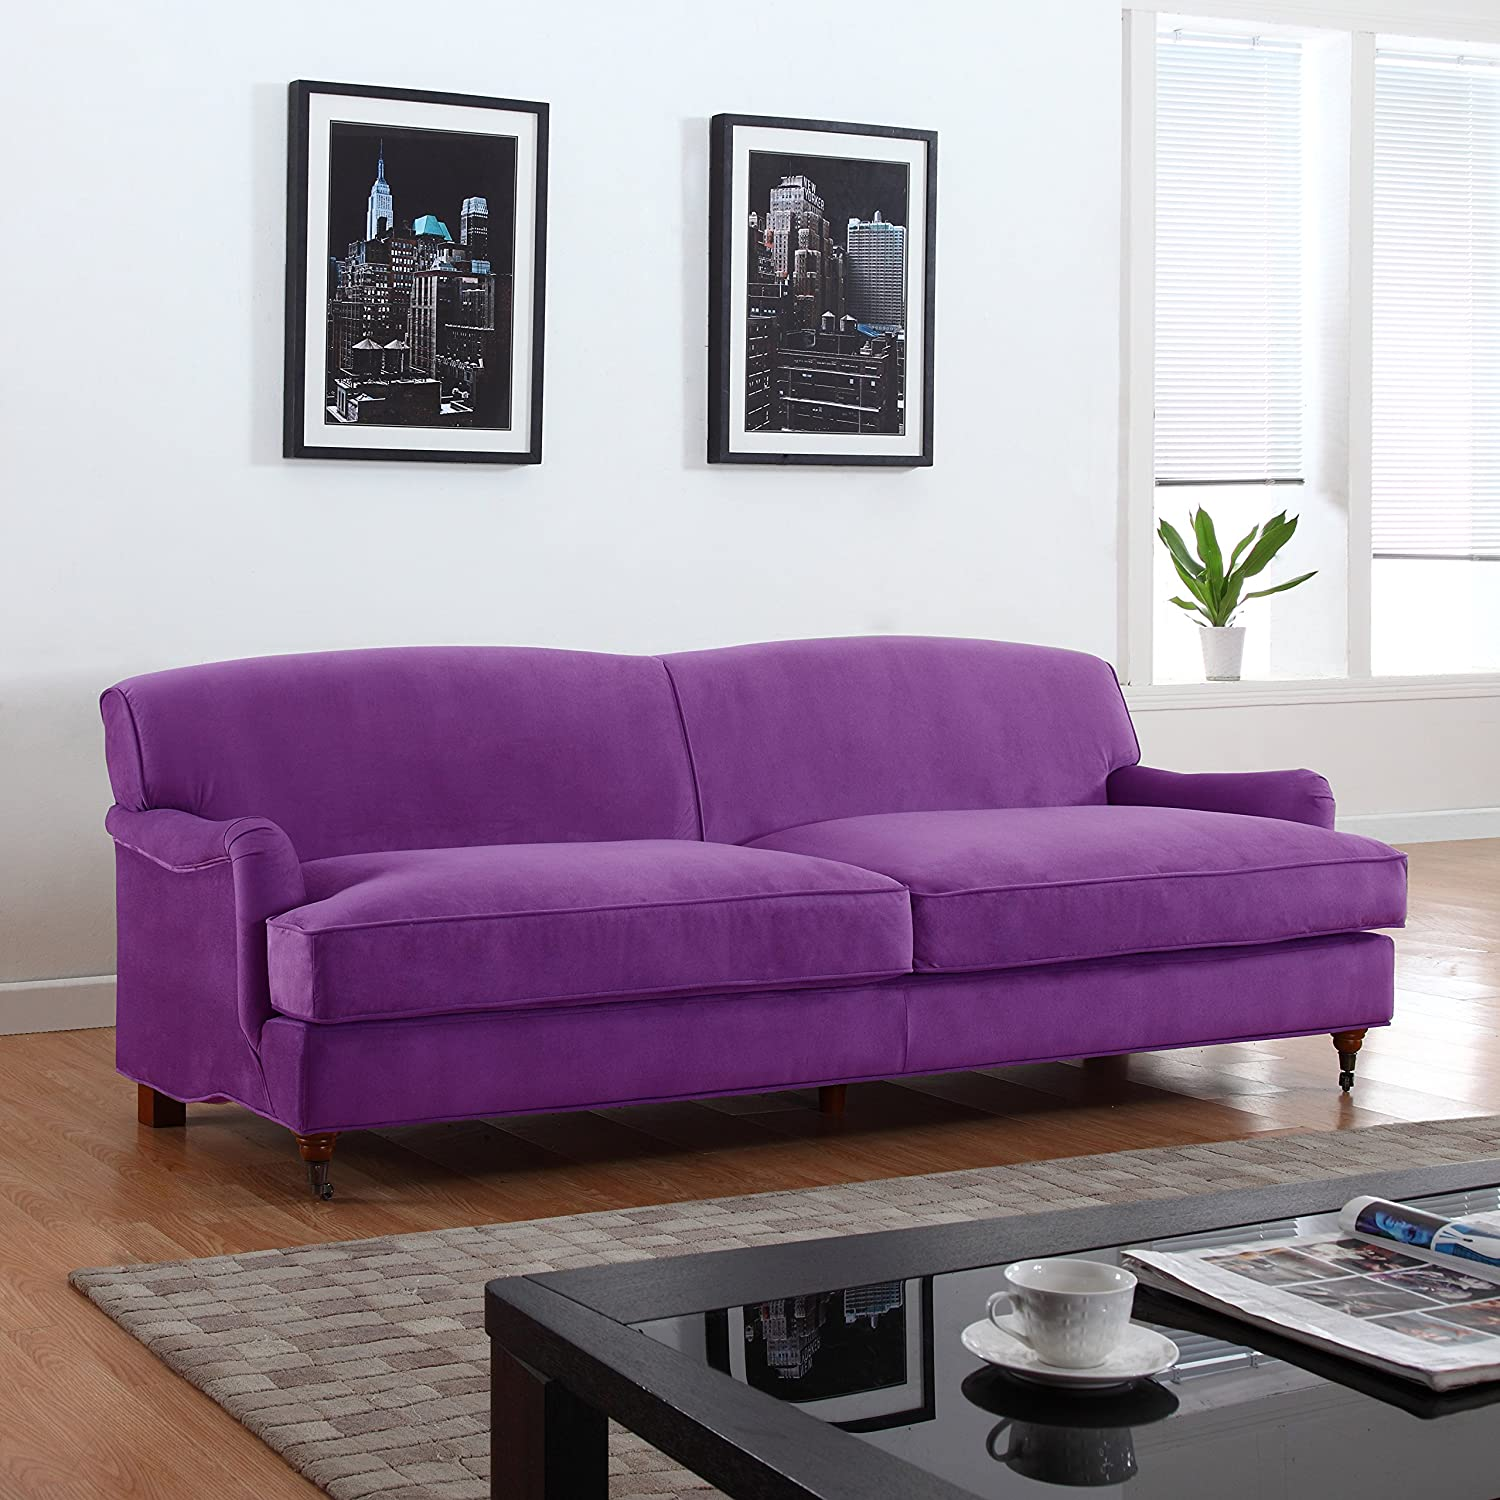 Mid Century Classic and Traditional Soft Microfiber Sofa Living Room Furniture - Color Blue - Grey - Purple (Purple